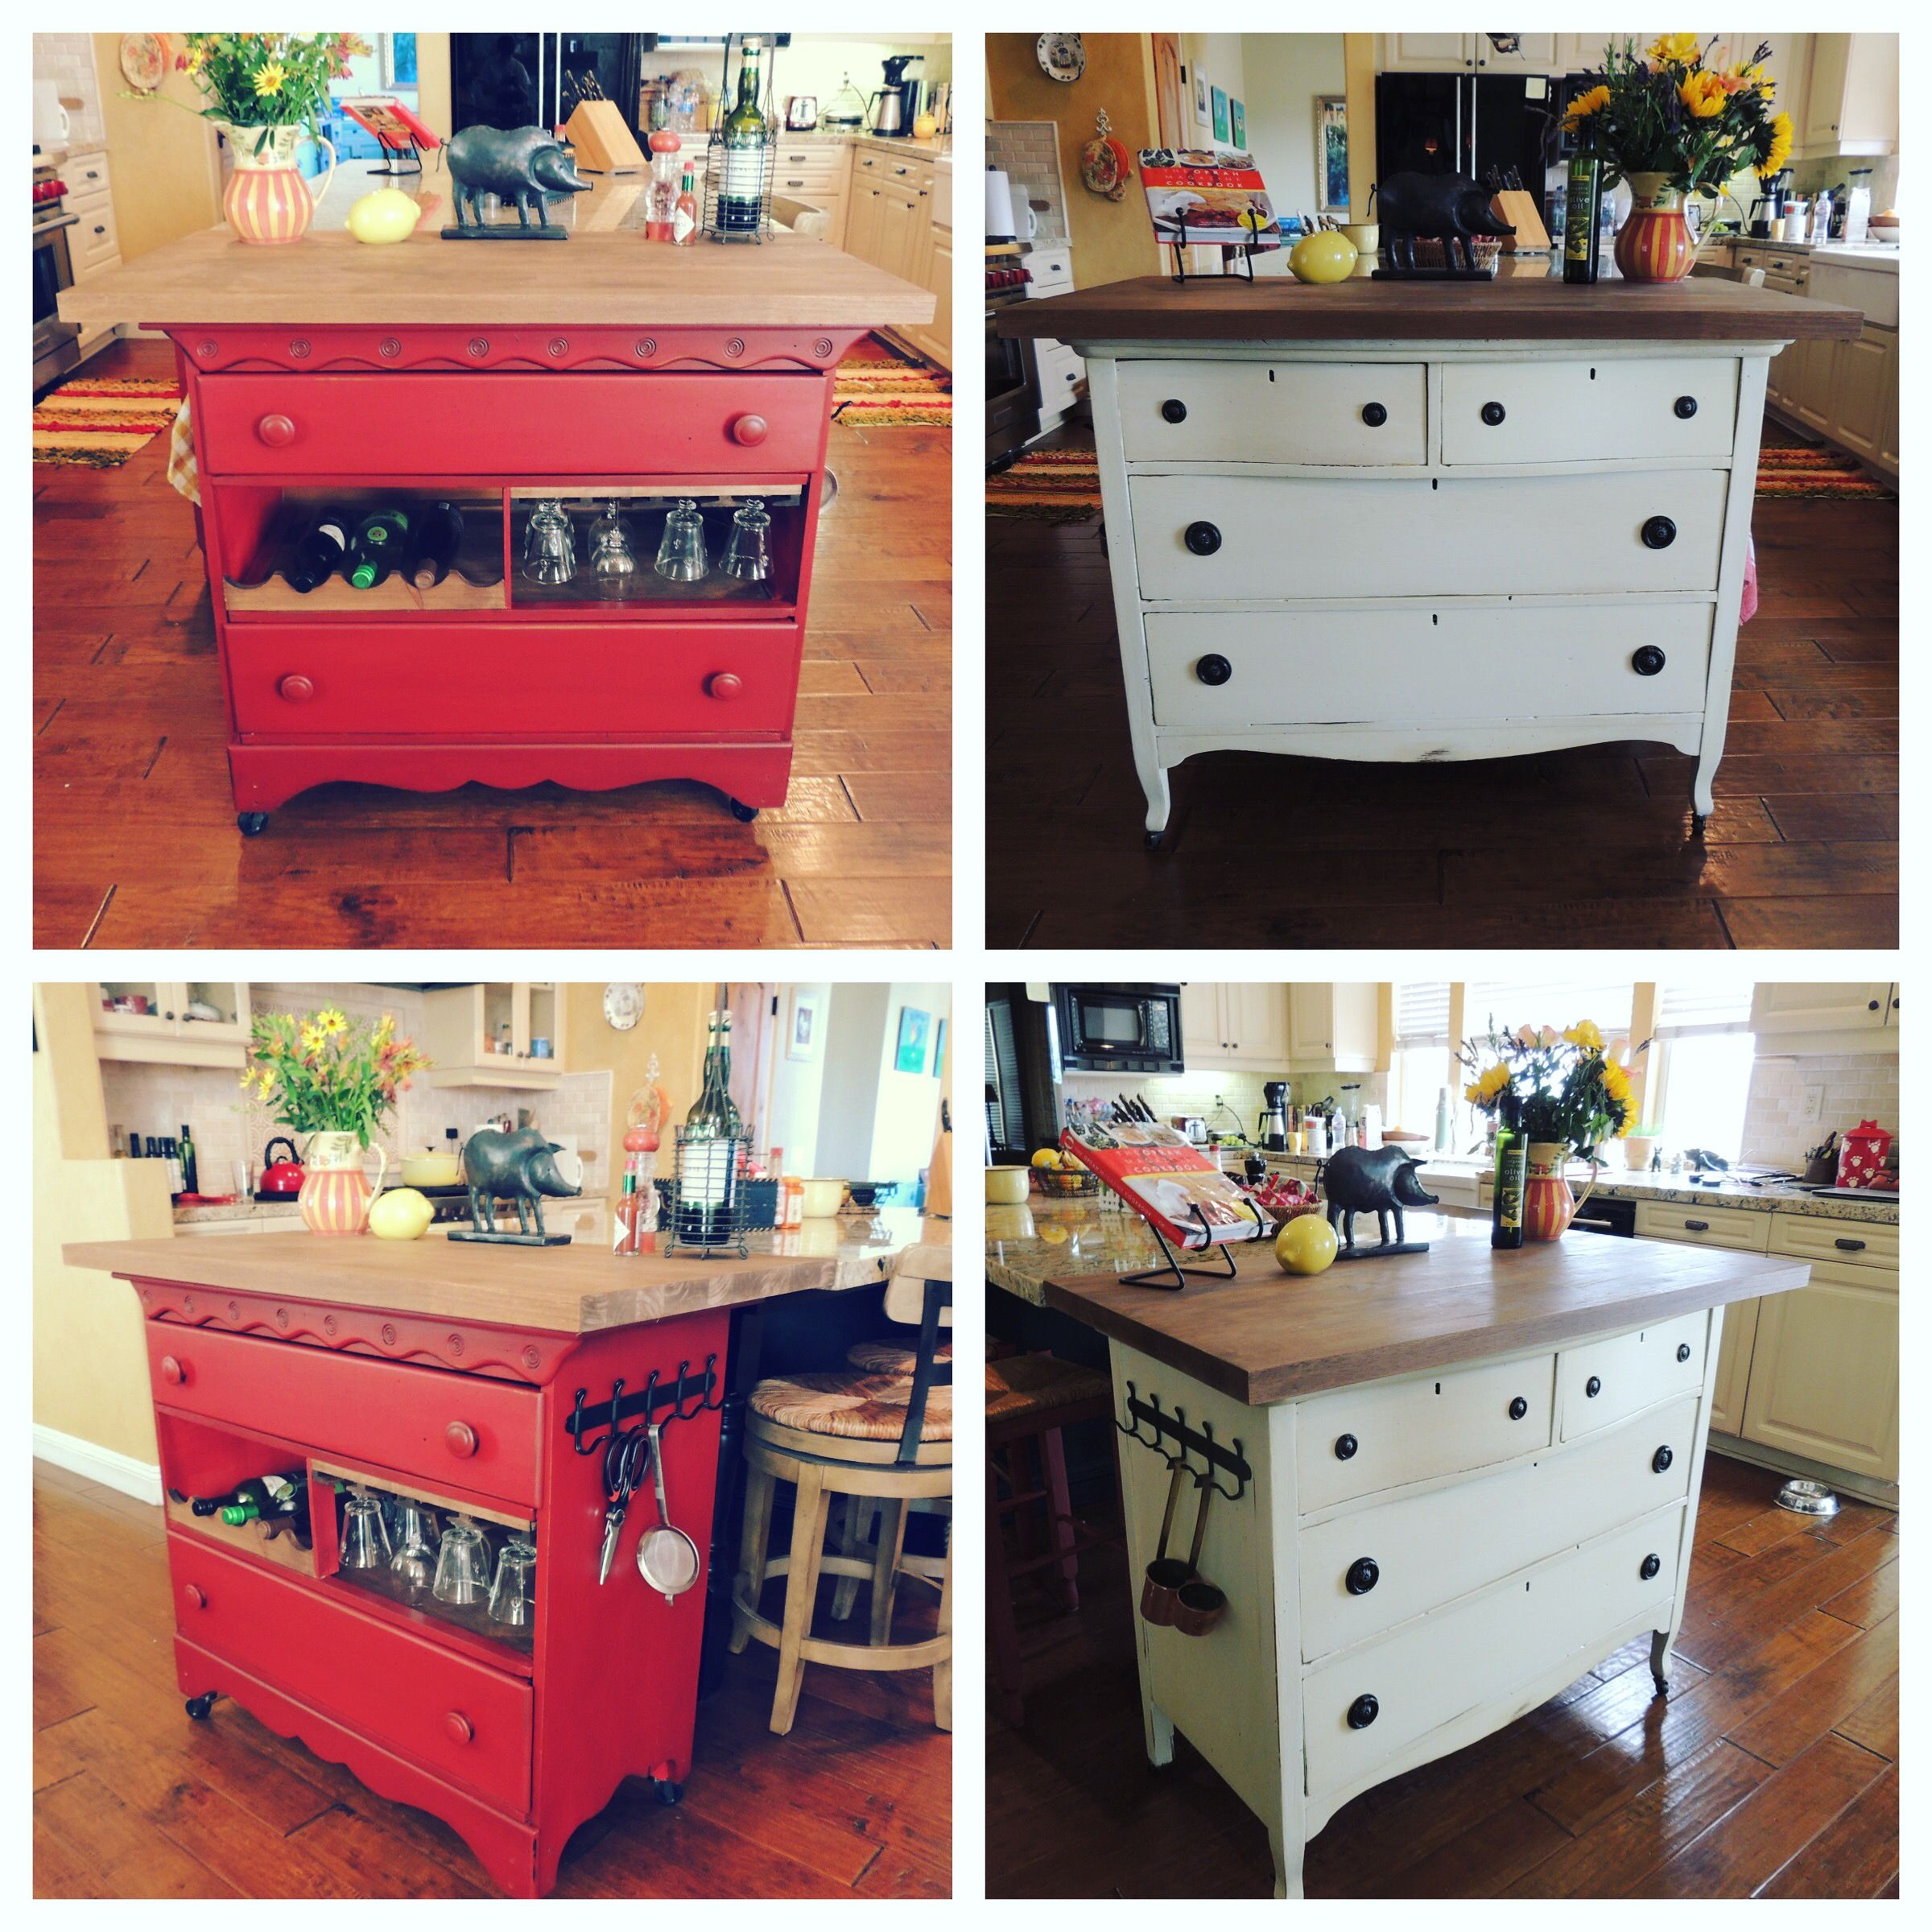 Introducing Our Two Newest Girls Scarlett Red And Francis Ivory Do You Love Scarlett S Wine Rack And Bar H Vintage Kitchen Unique Items Products Kitchen